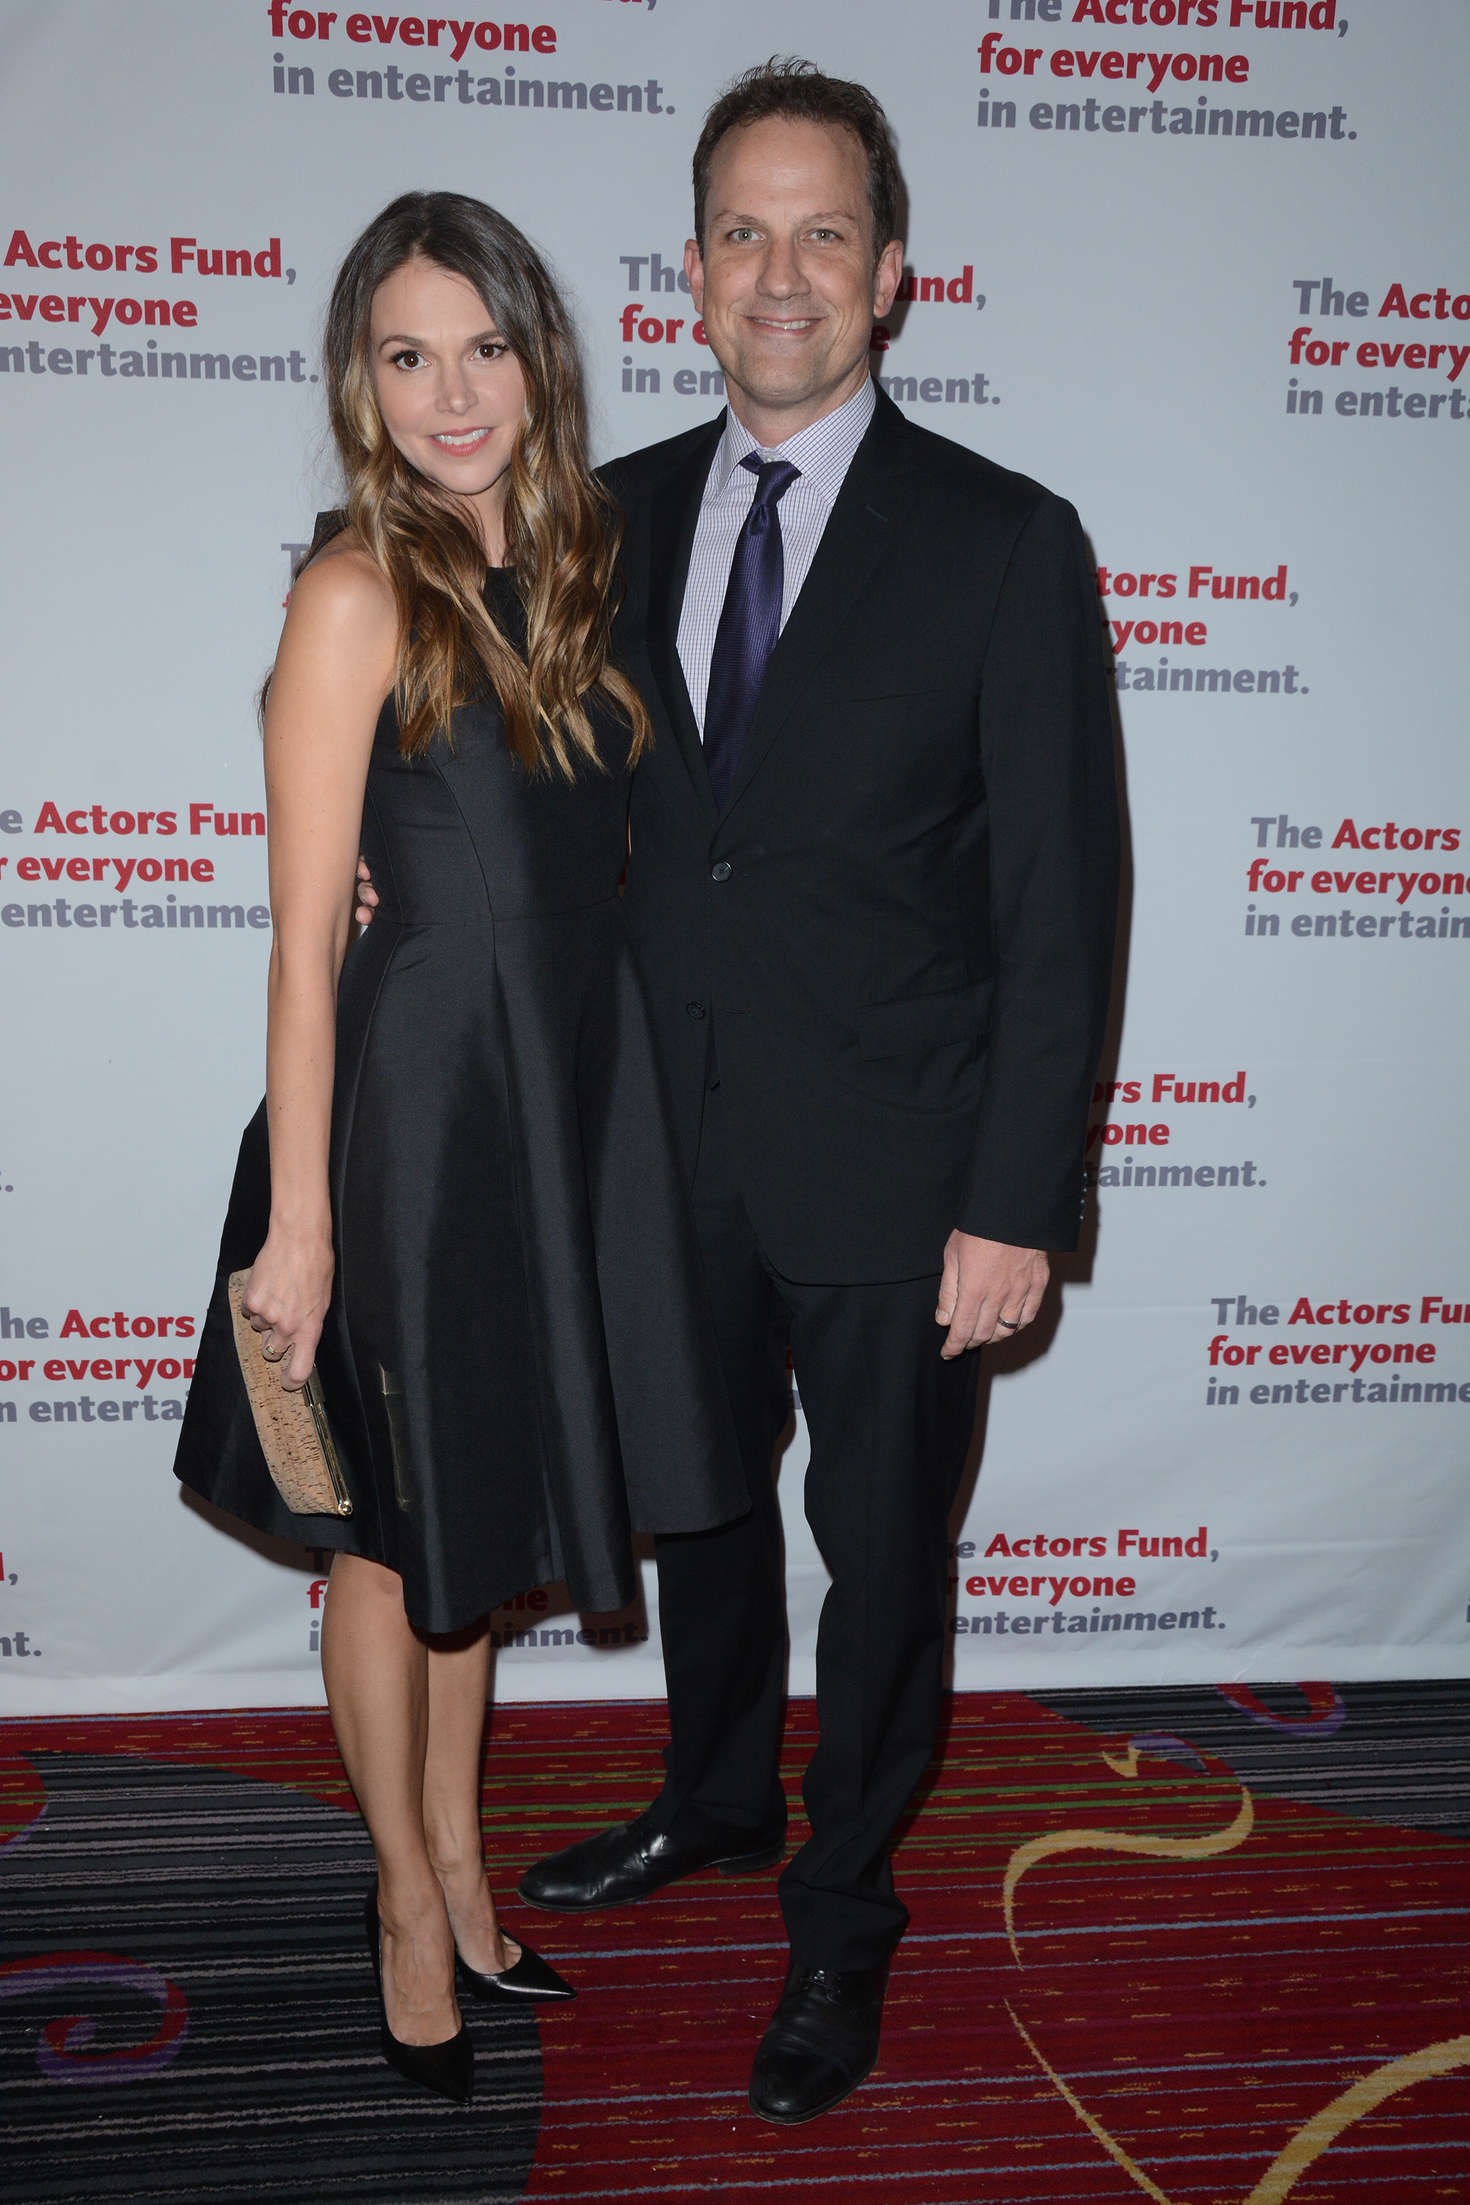 Sutton Foster The Actors Fund Gala in New York